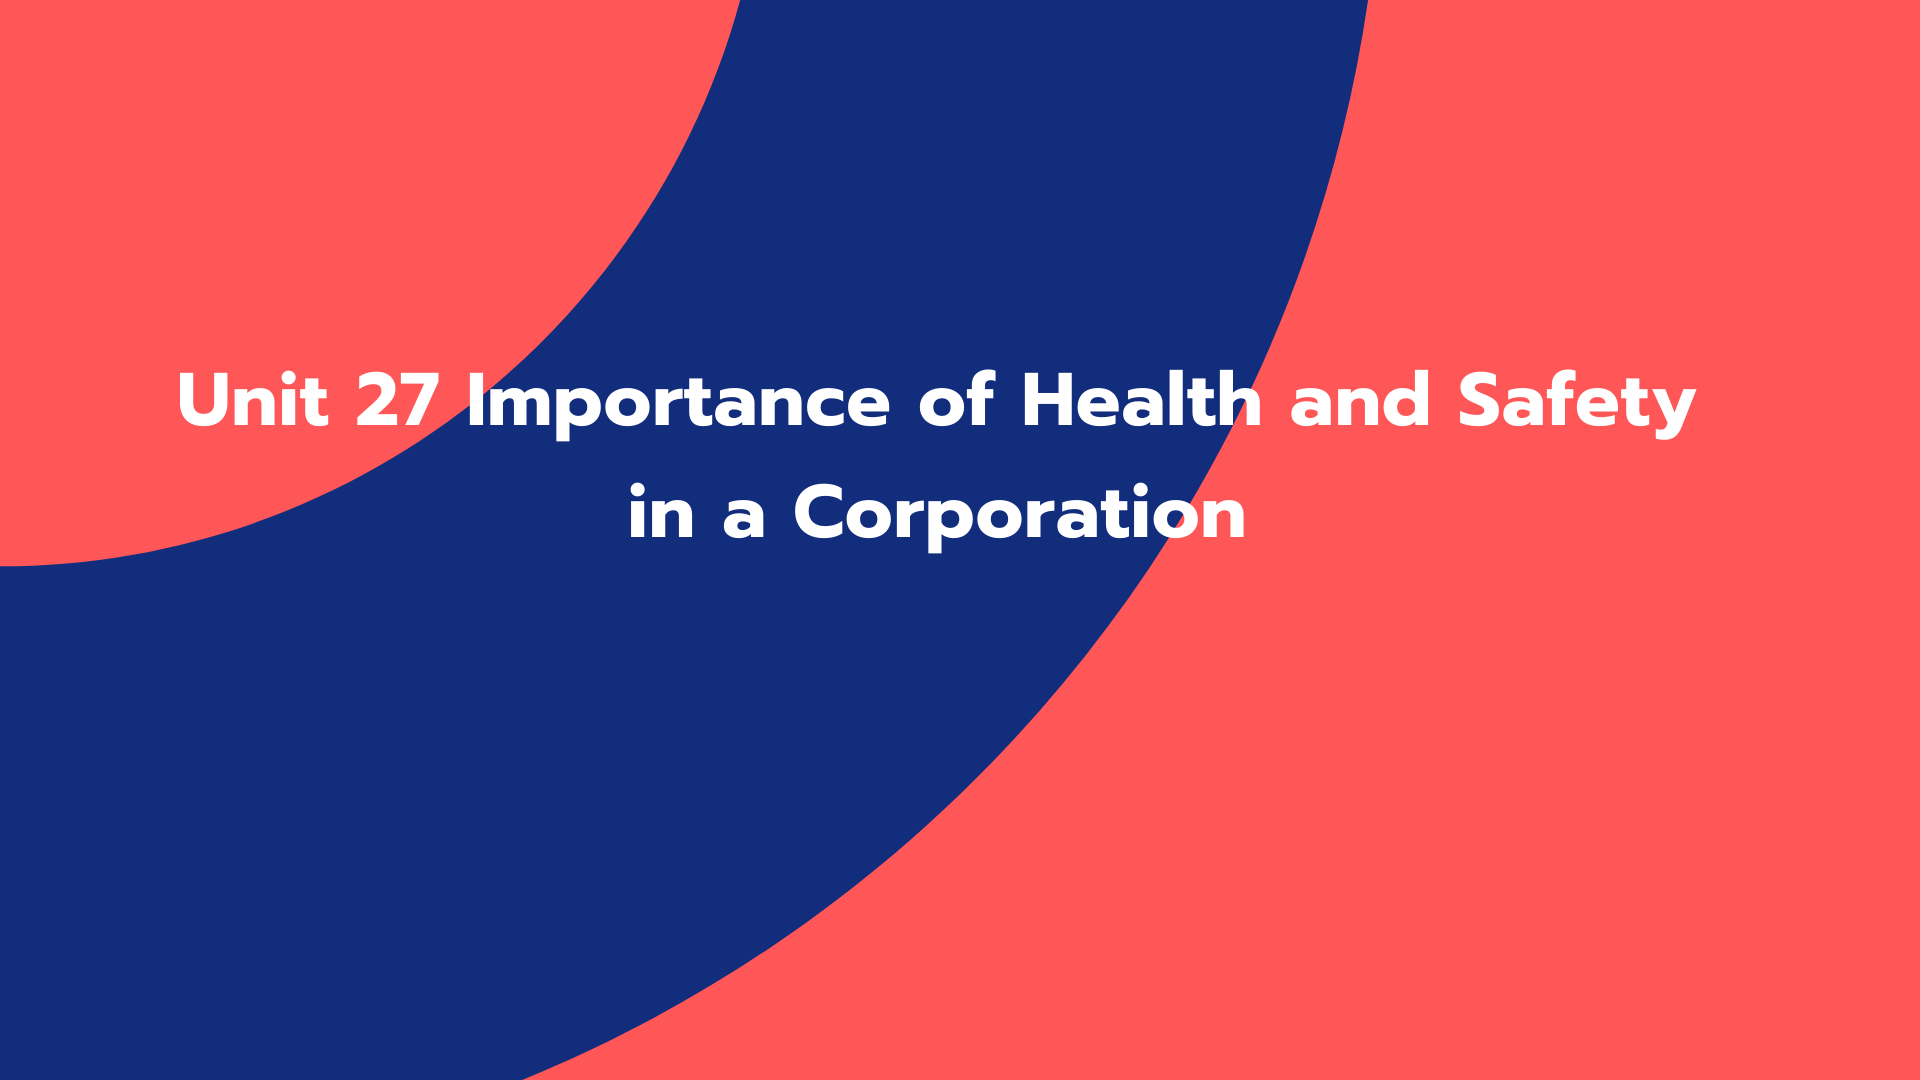 Unit 27 Importance of Health and Safety in a Corporation